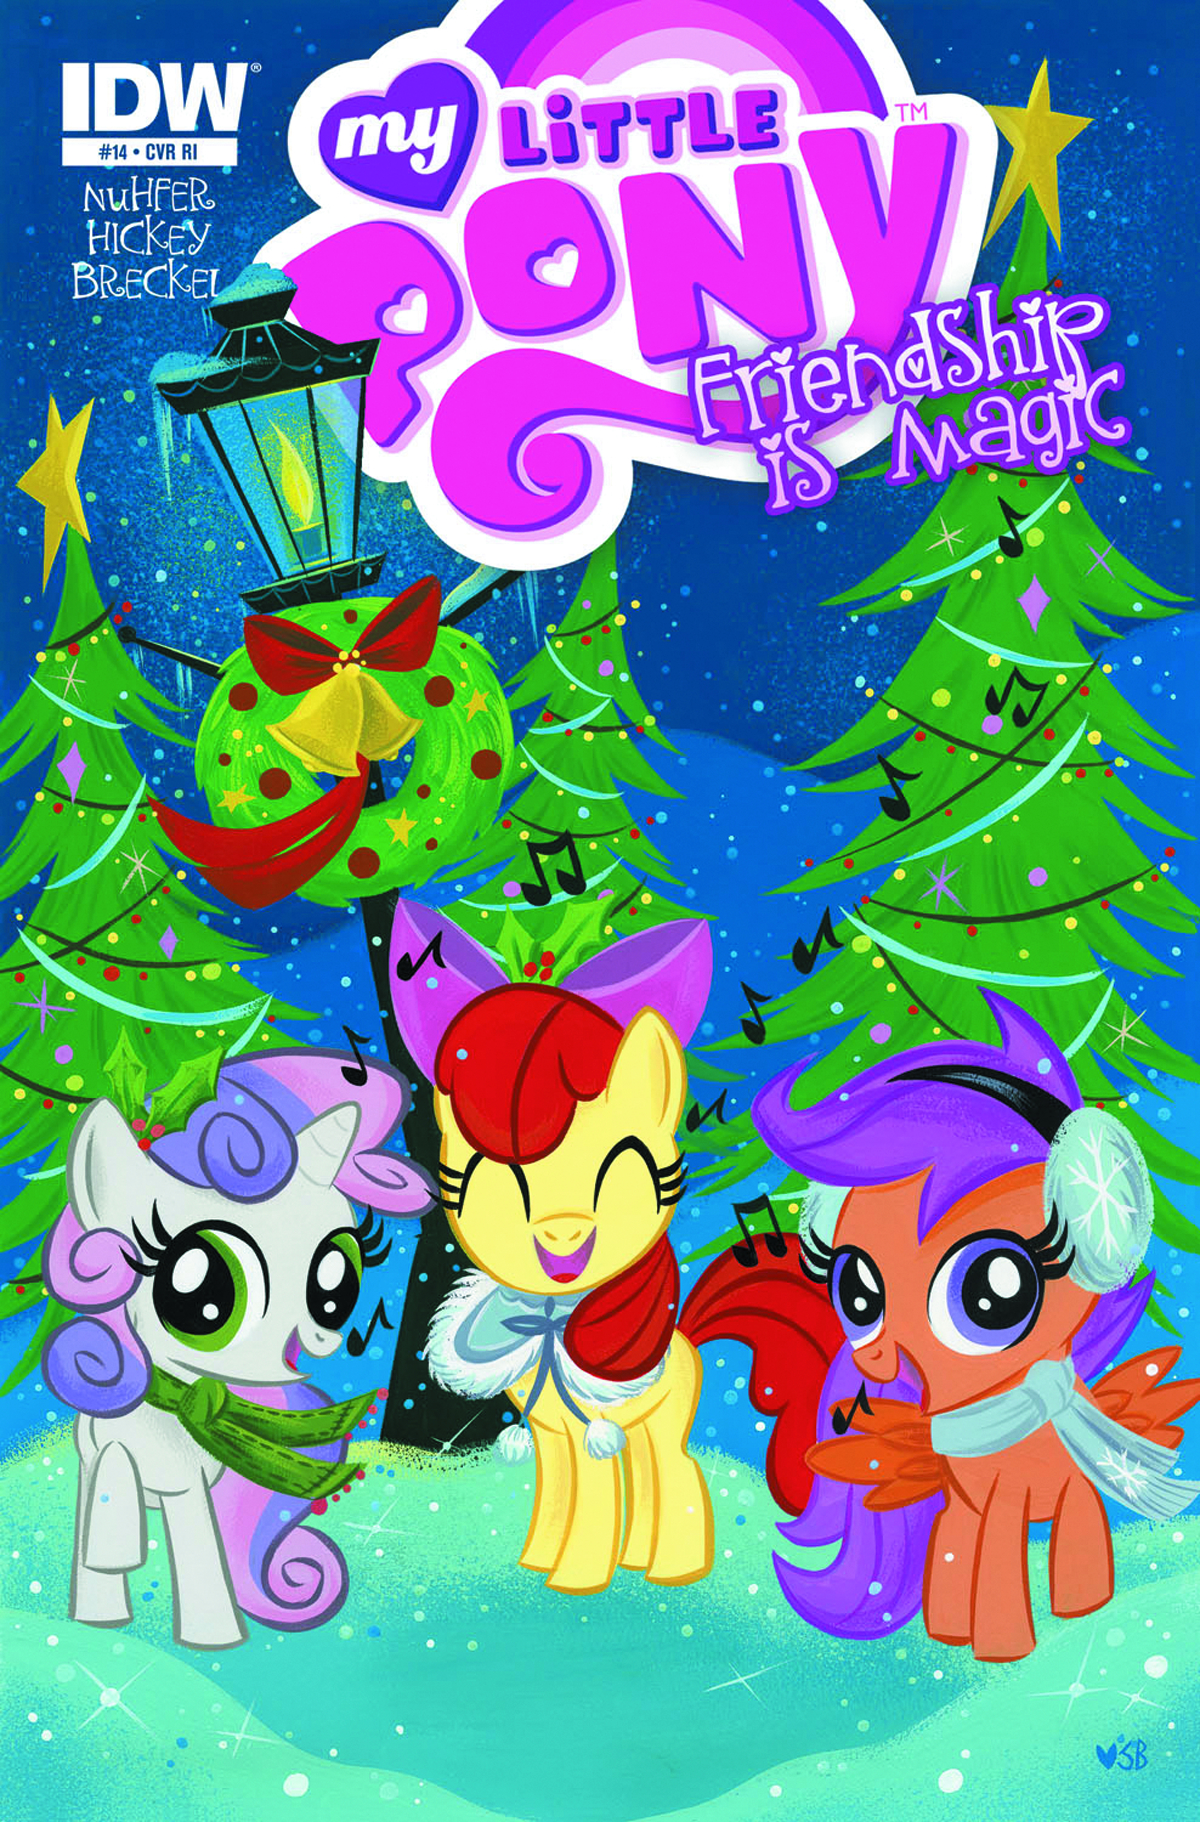 MY LITTLE PONY FRIENDSHIP IS MAGIC #14 FREE 10 COPY INCV